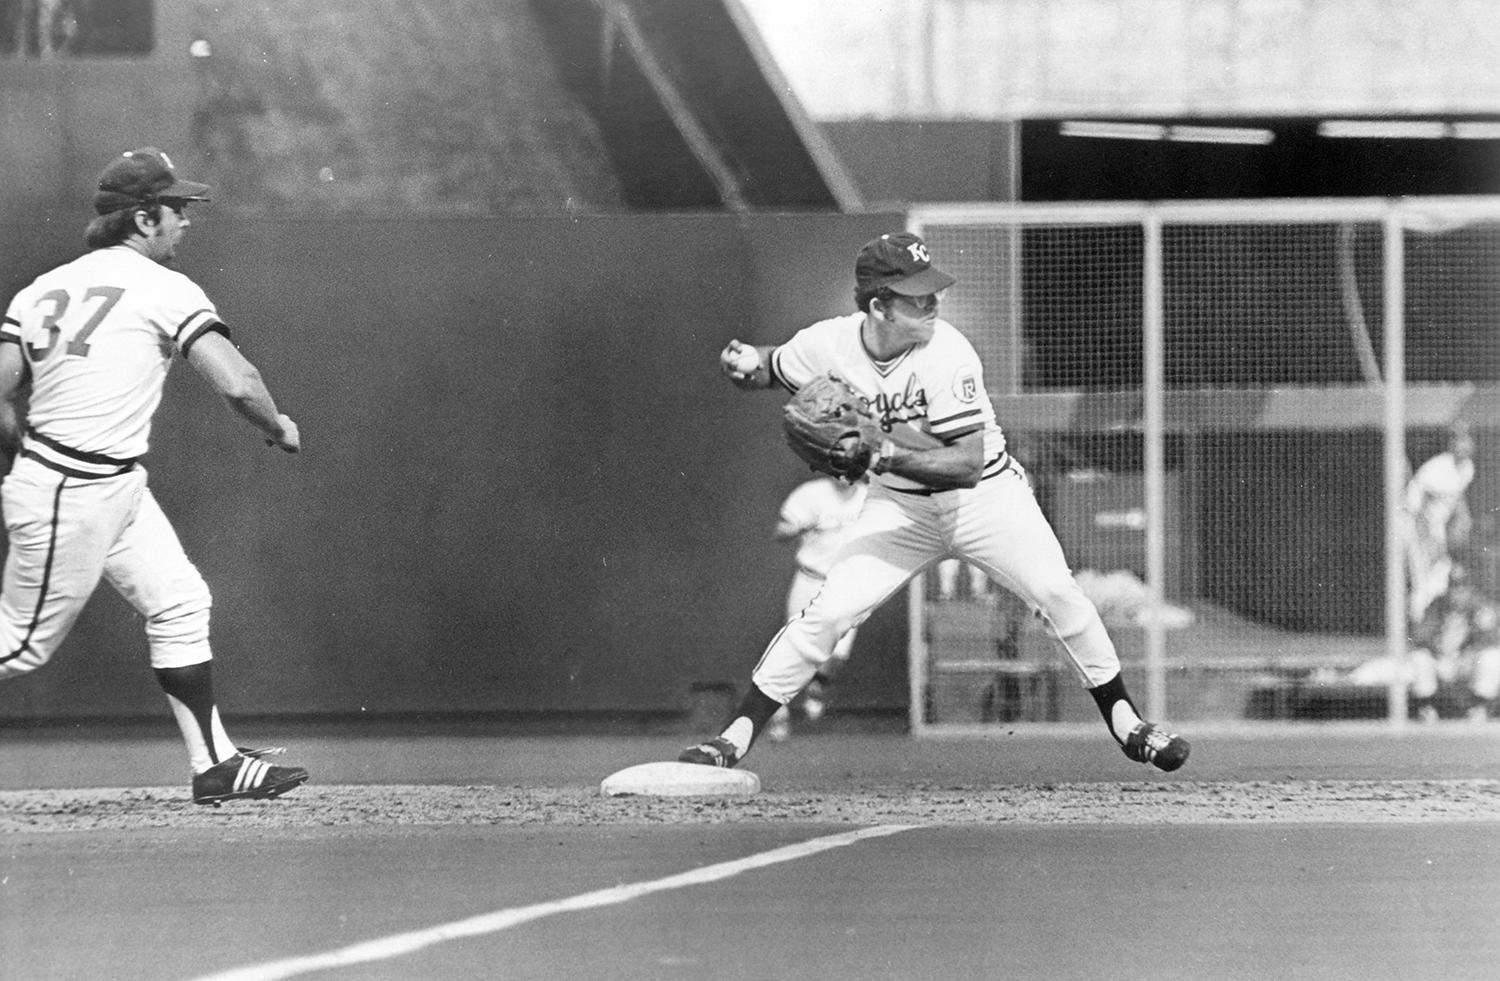 After being traded to the Kansas City Royals in 1970, Cookie Rojas became their starting second baseman, stabilizing the infield for a young, inexperienced team. (National Baseball Hall of Fame and Museum)